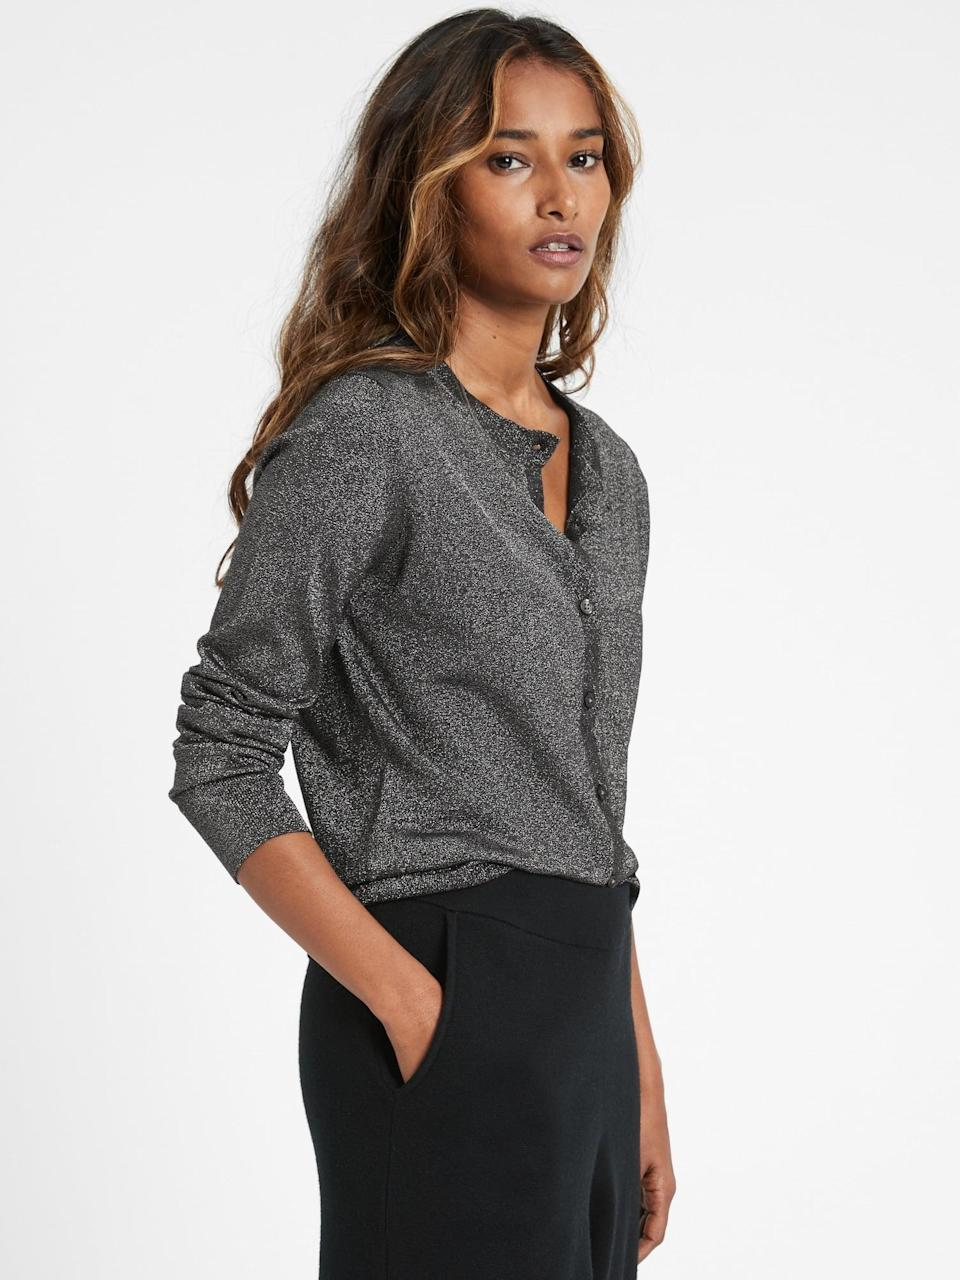 <p>It might not be a Zoom party, just work from home around the season and you want to add a little shine? Try this <span>Banana Republic Metallic Cardigan Sweater</span> ($72, originally $90)!</p>